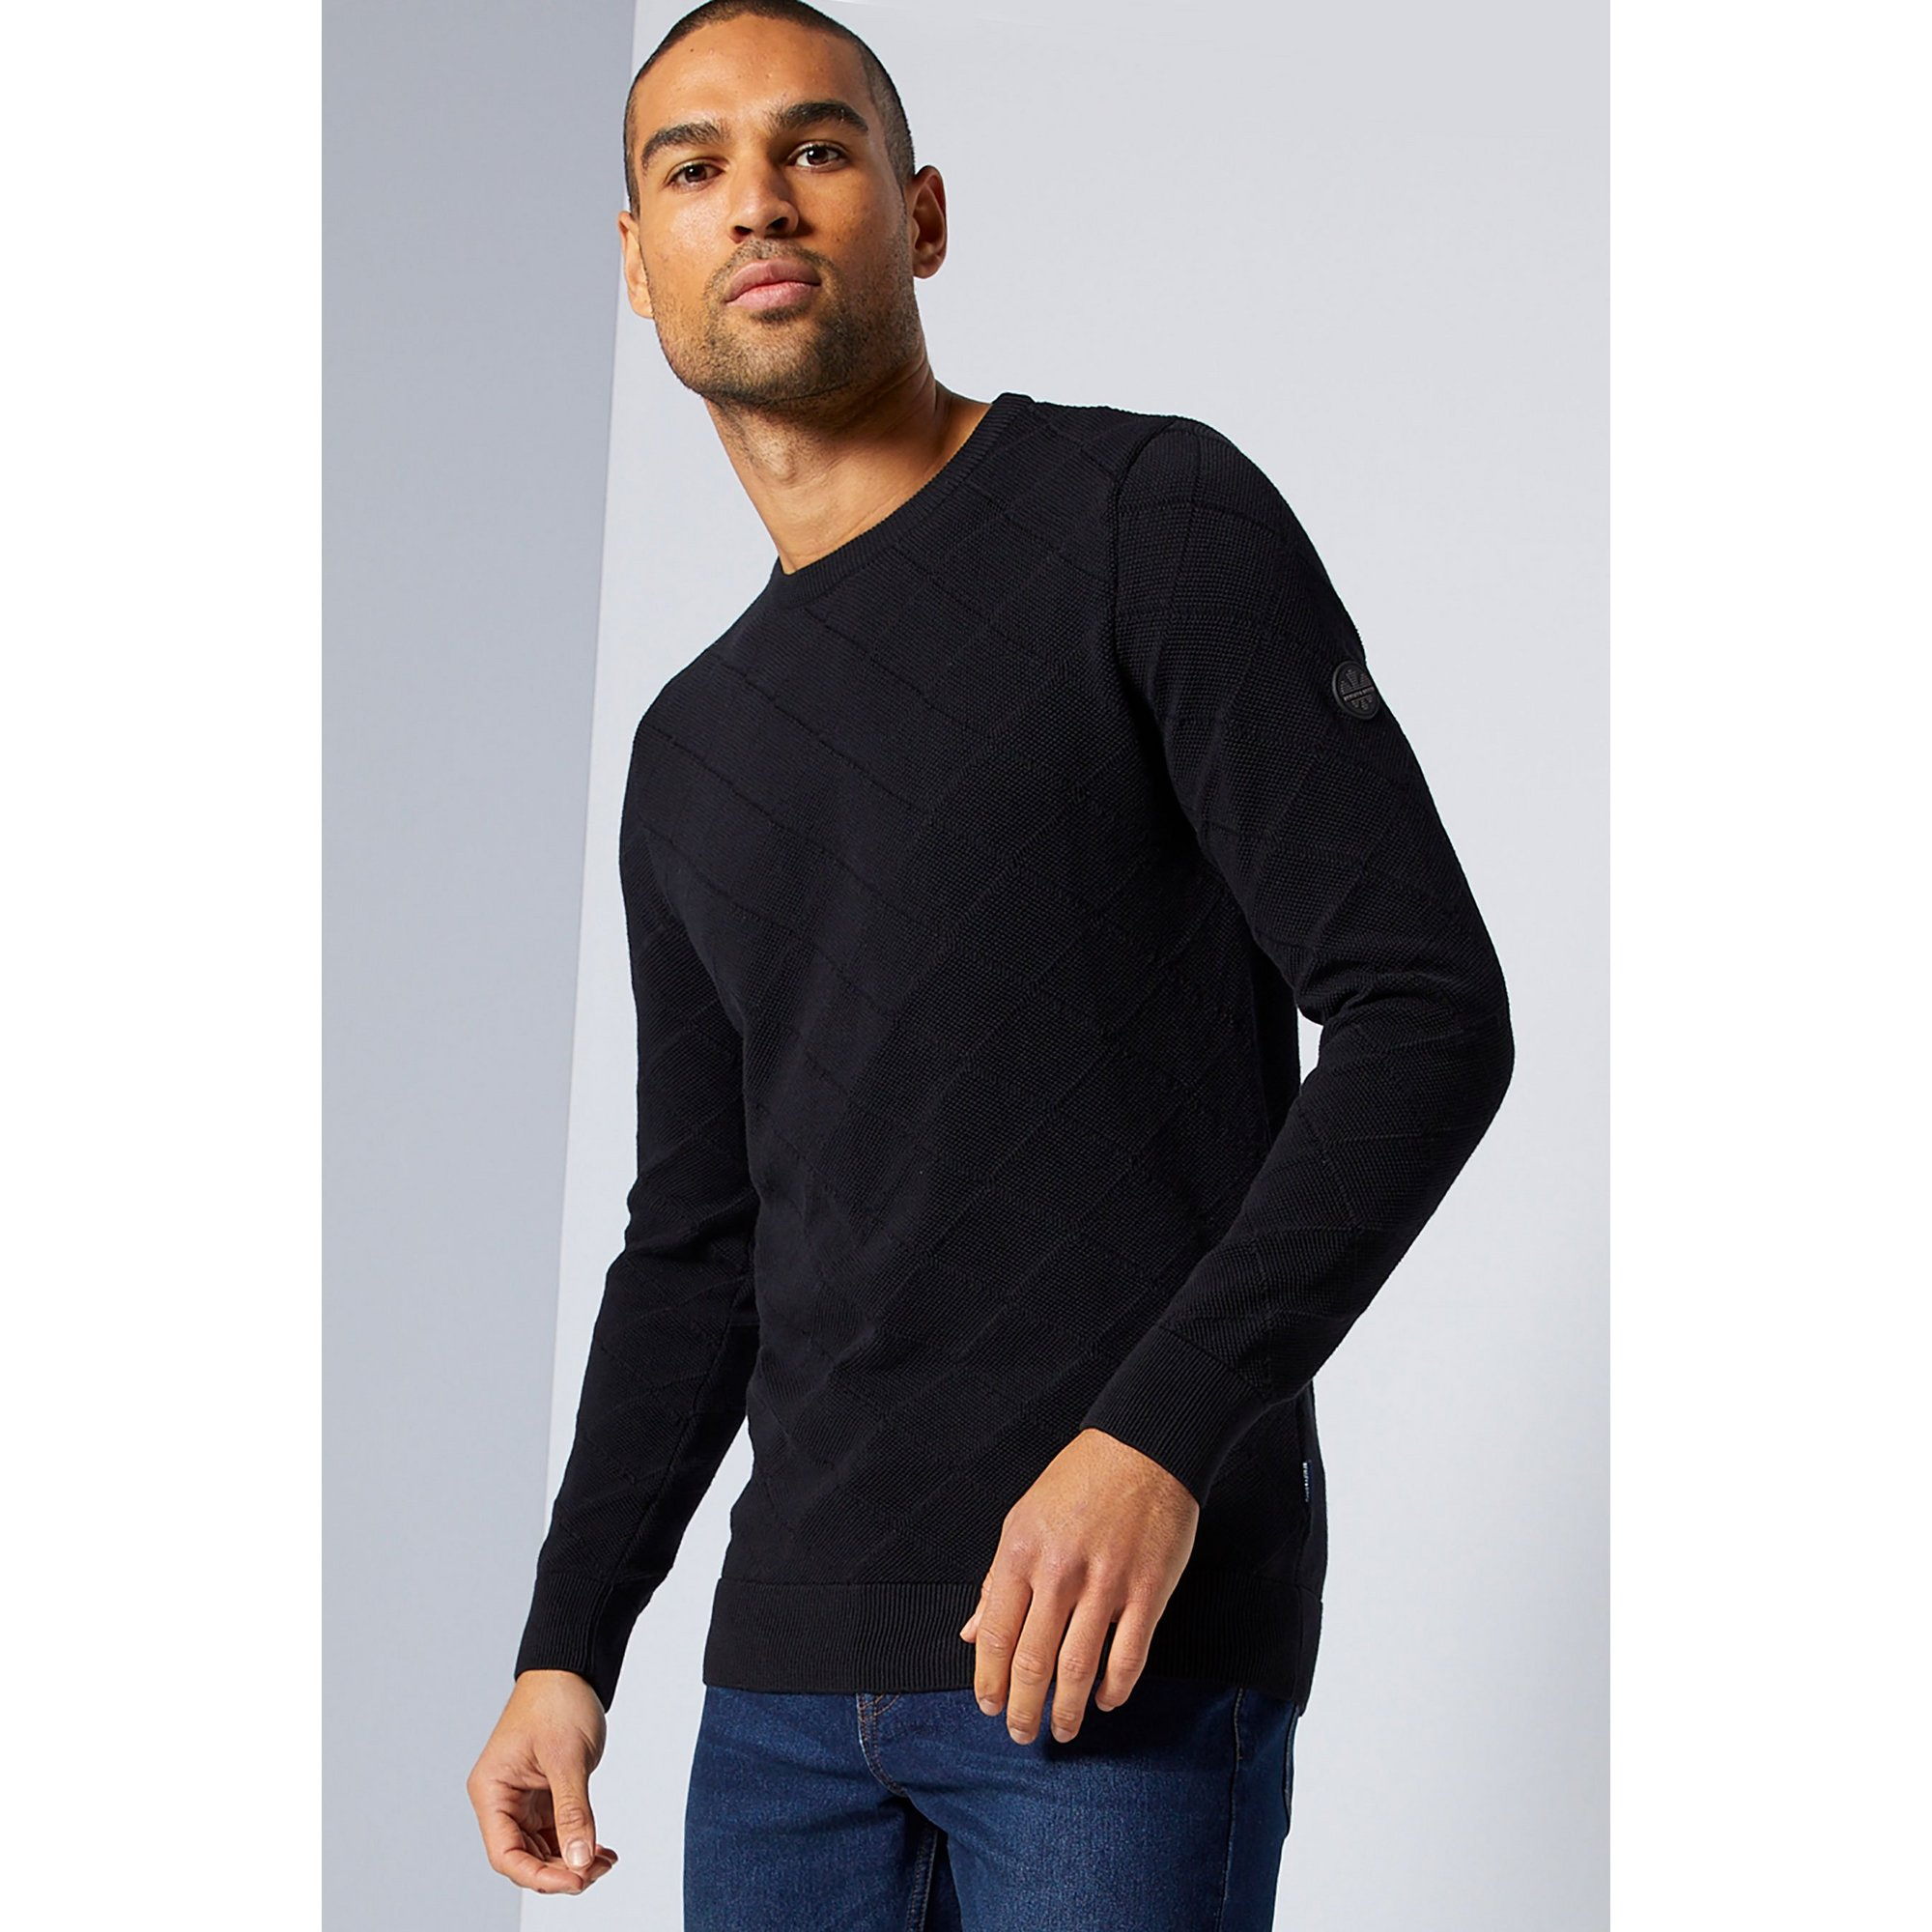 Image of Bewley and Ritch Crew Neck Arm Branded Knit Top